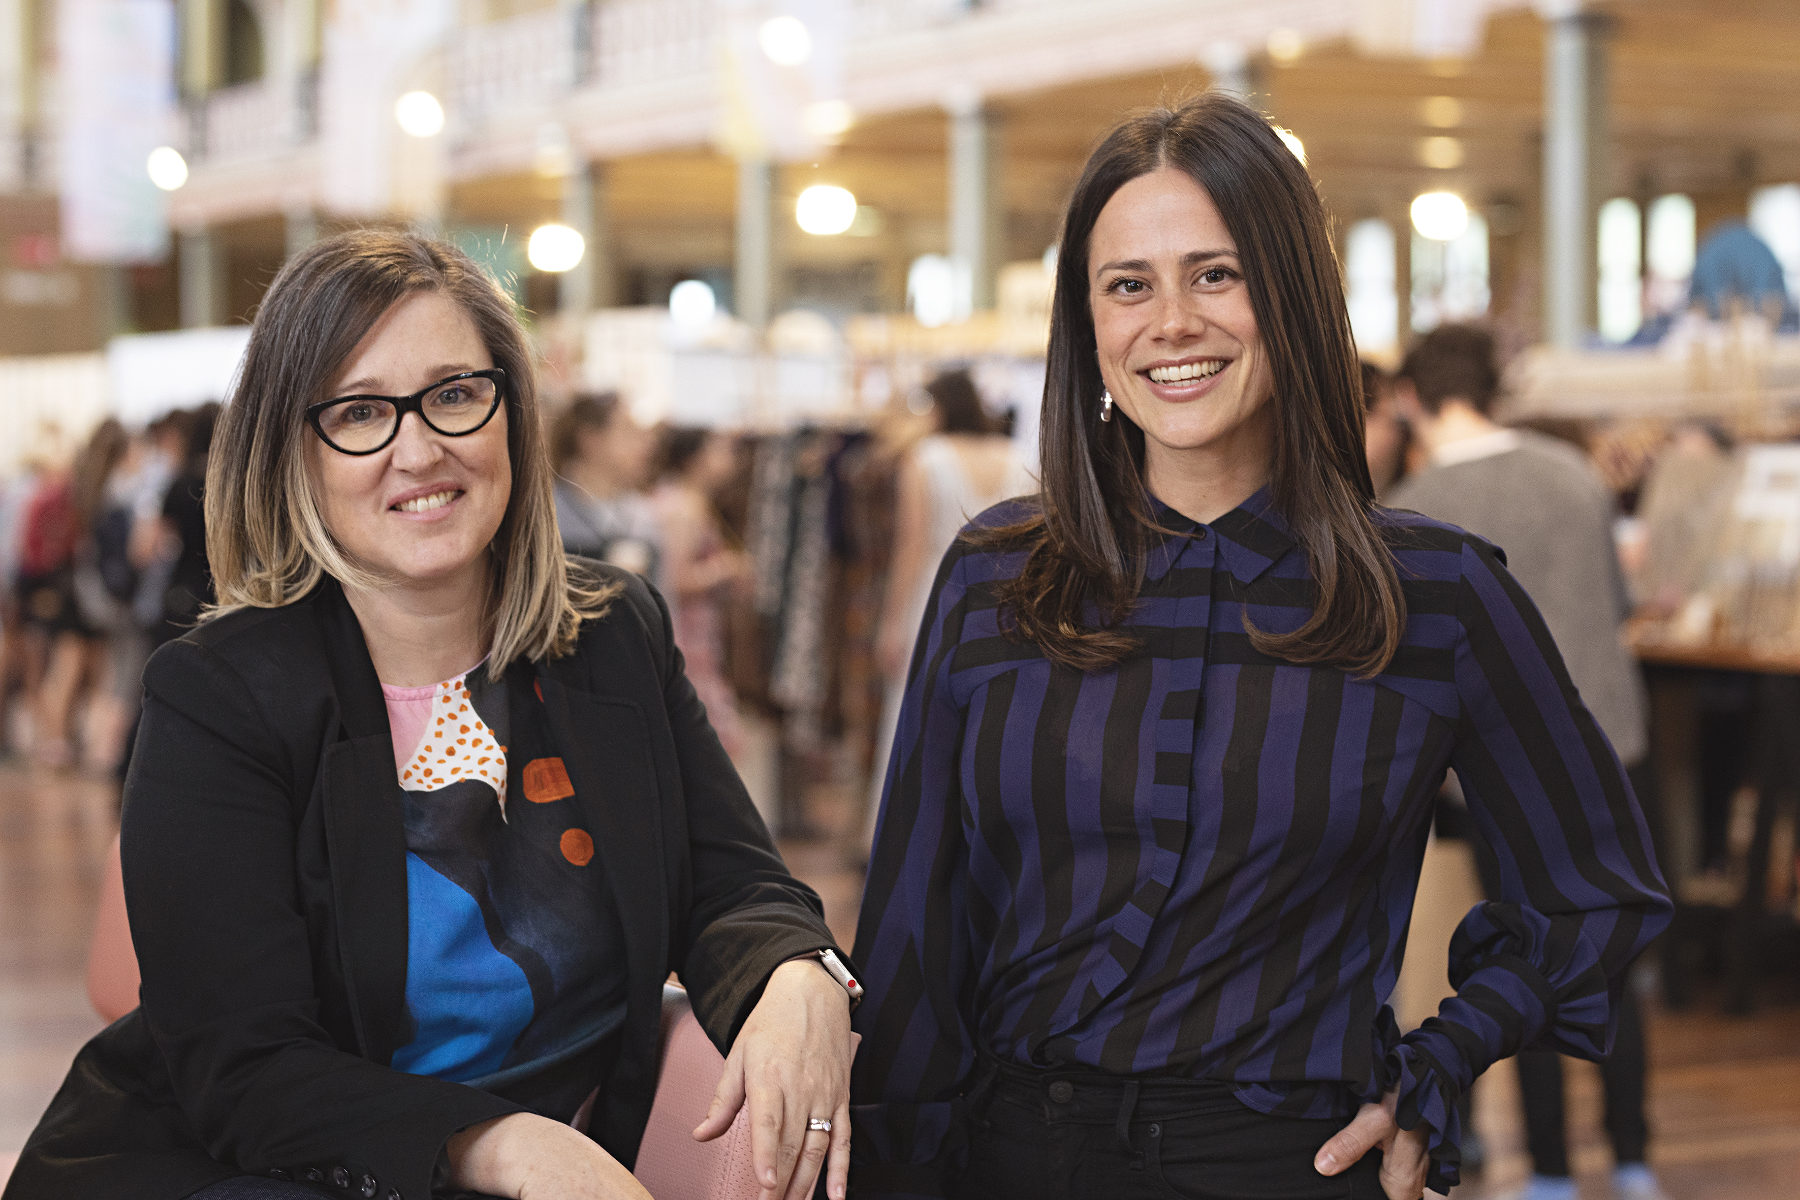 Angela D'Alton and Renee Baker at Finders Keepers